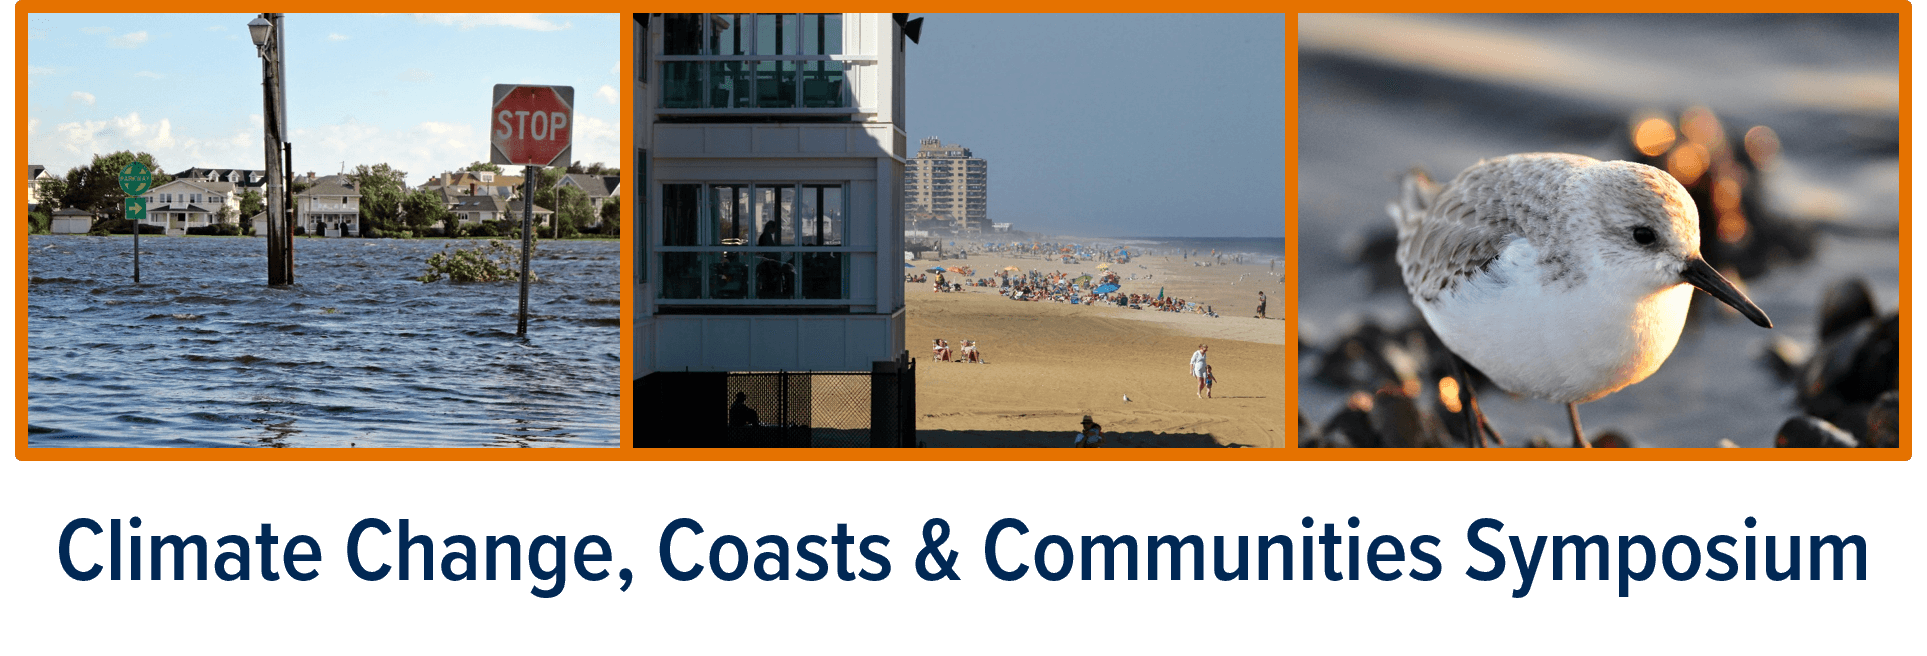 Promotional banner for Climate Change, Coasts & Communities Symposium at Monmouth University on April 17-18, 2019